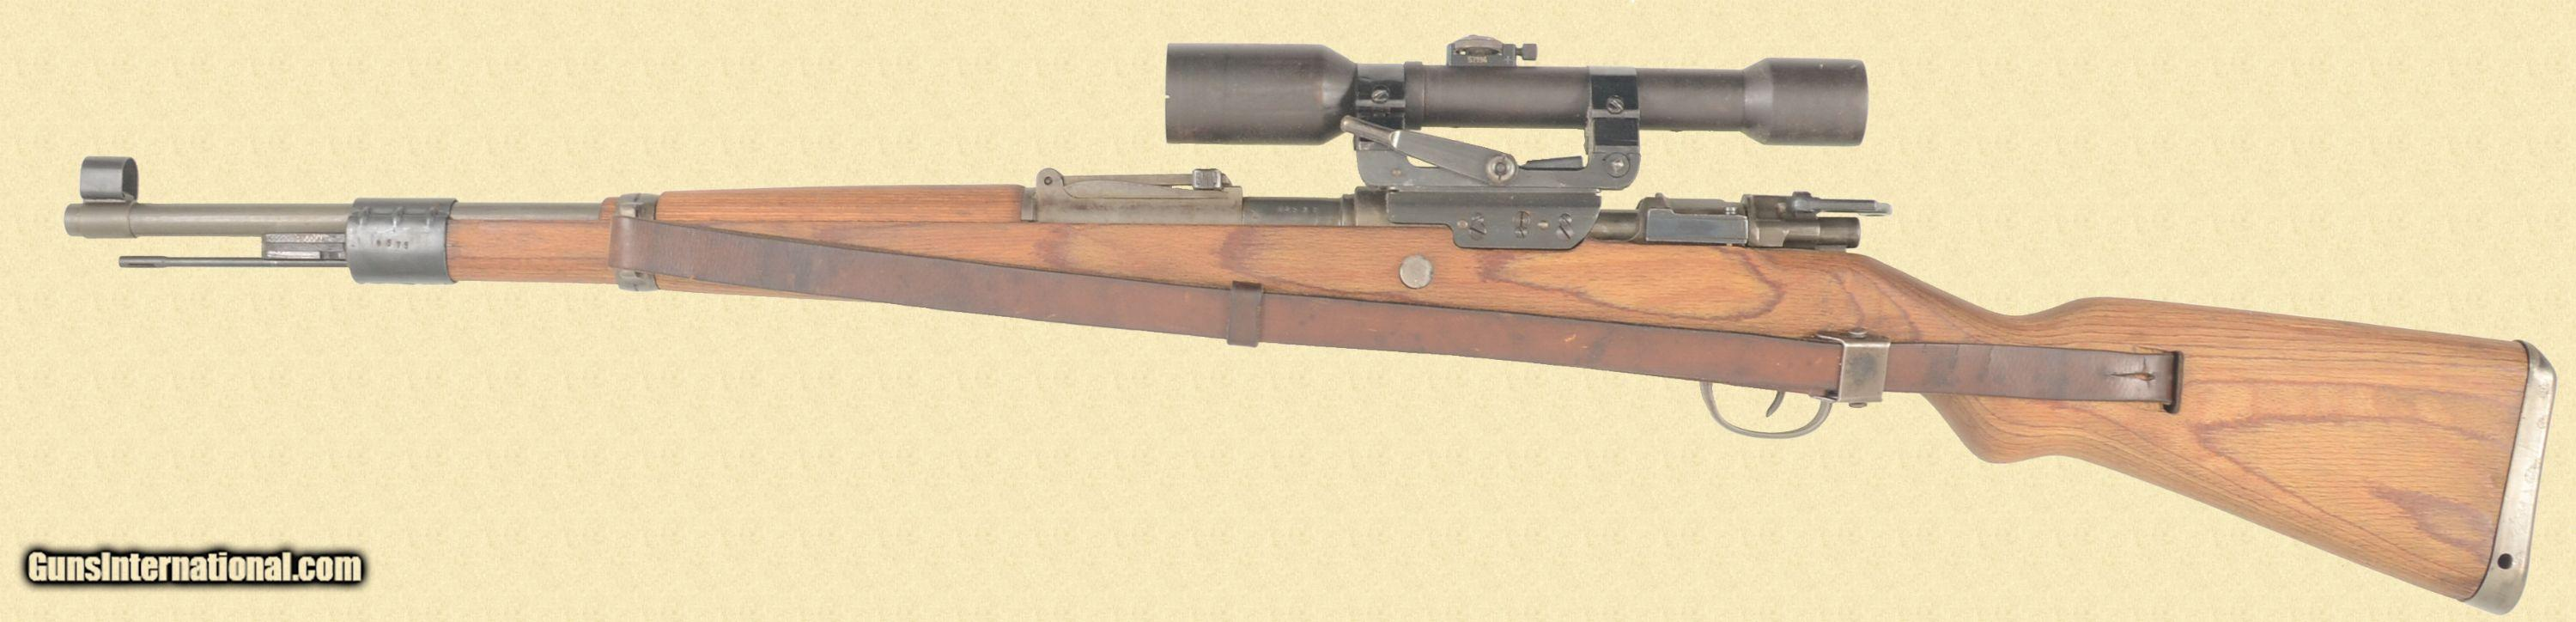 MAUSER K98 LONG SIDE RAIL SNIPERS RIFLE